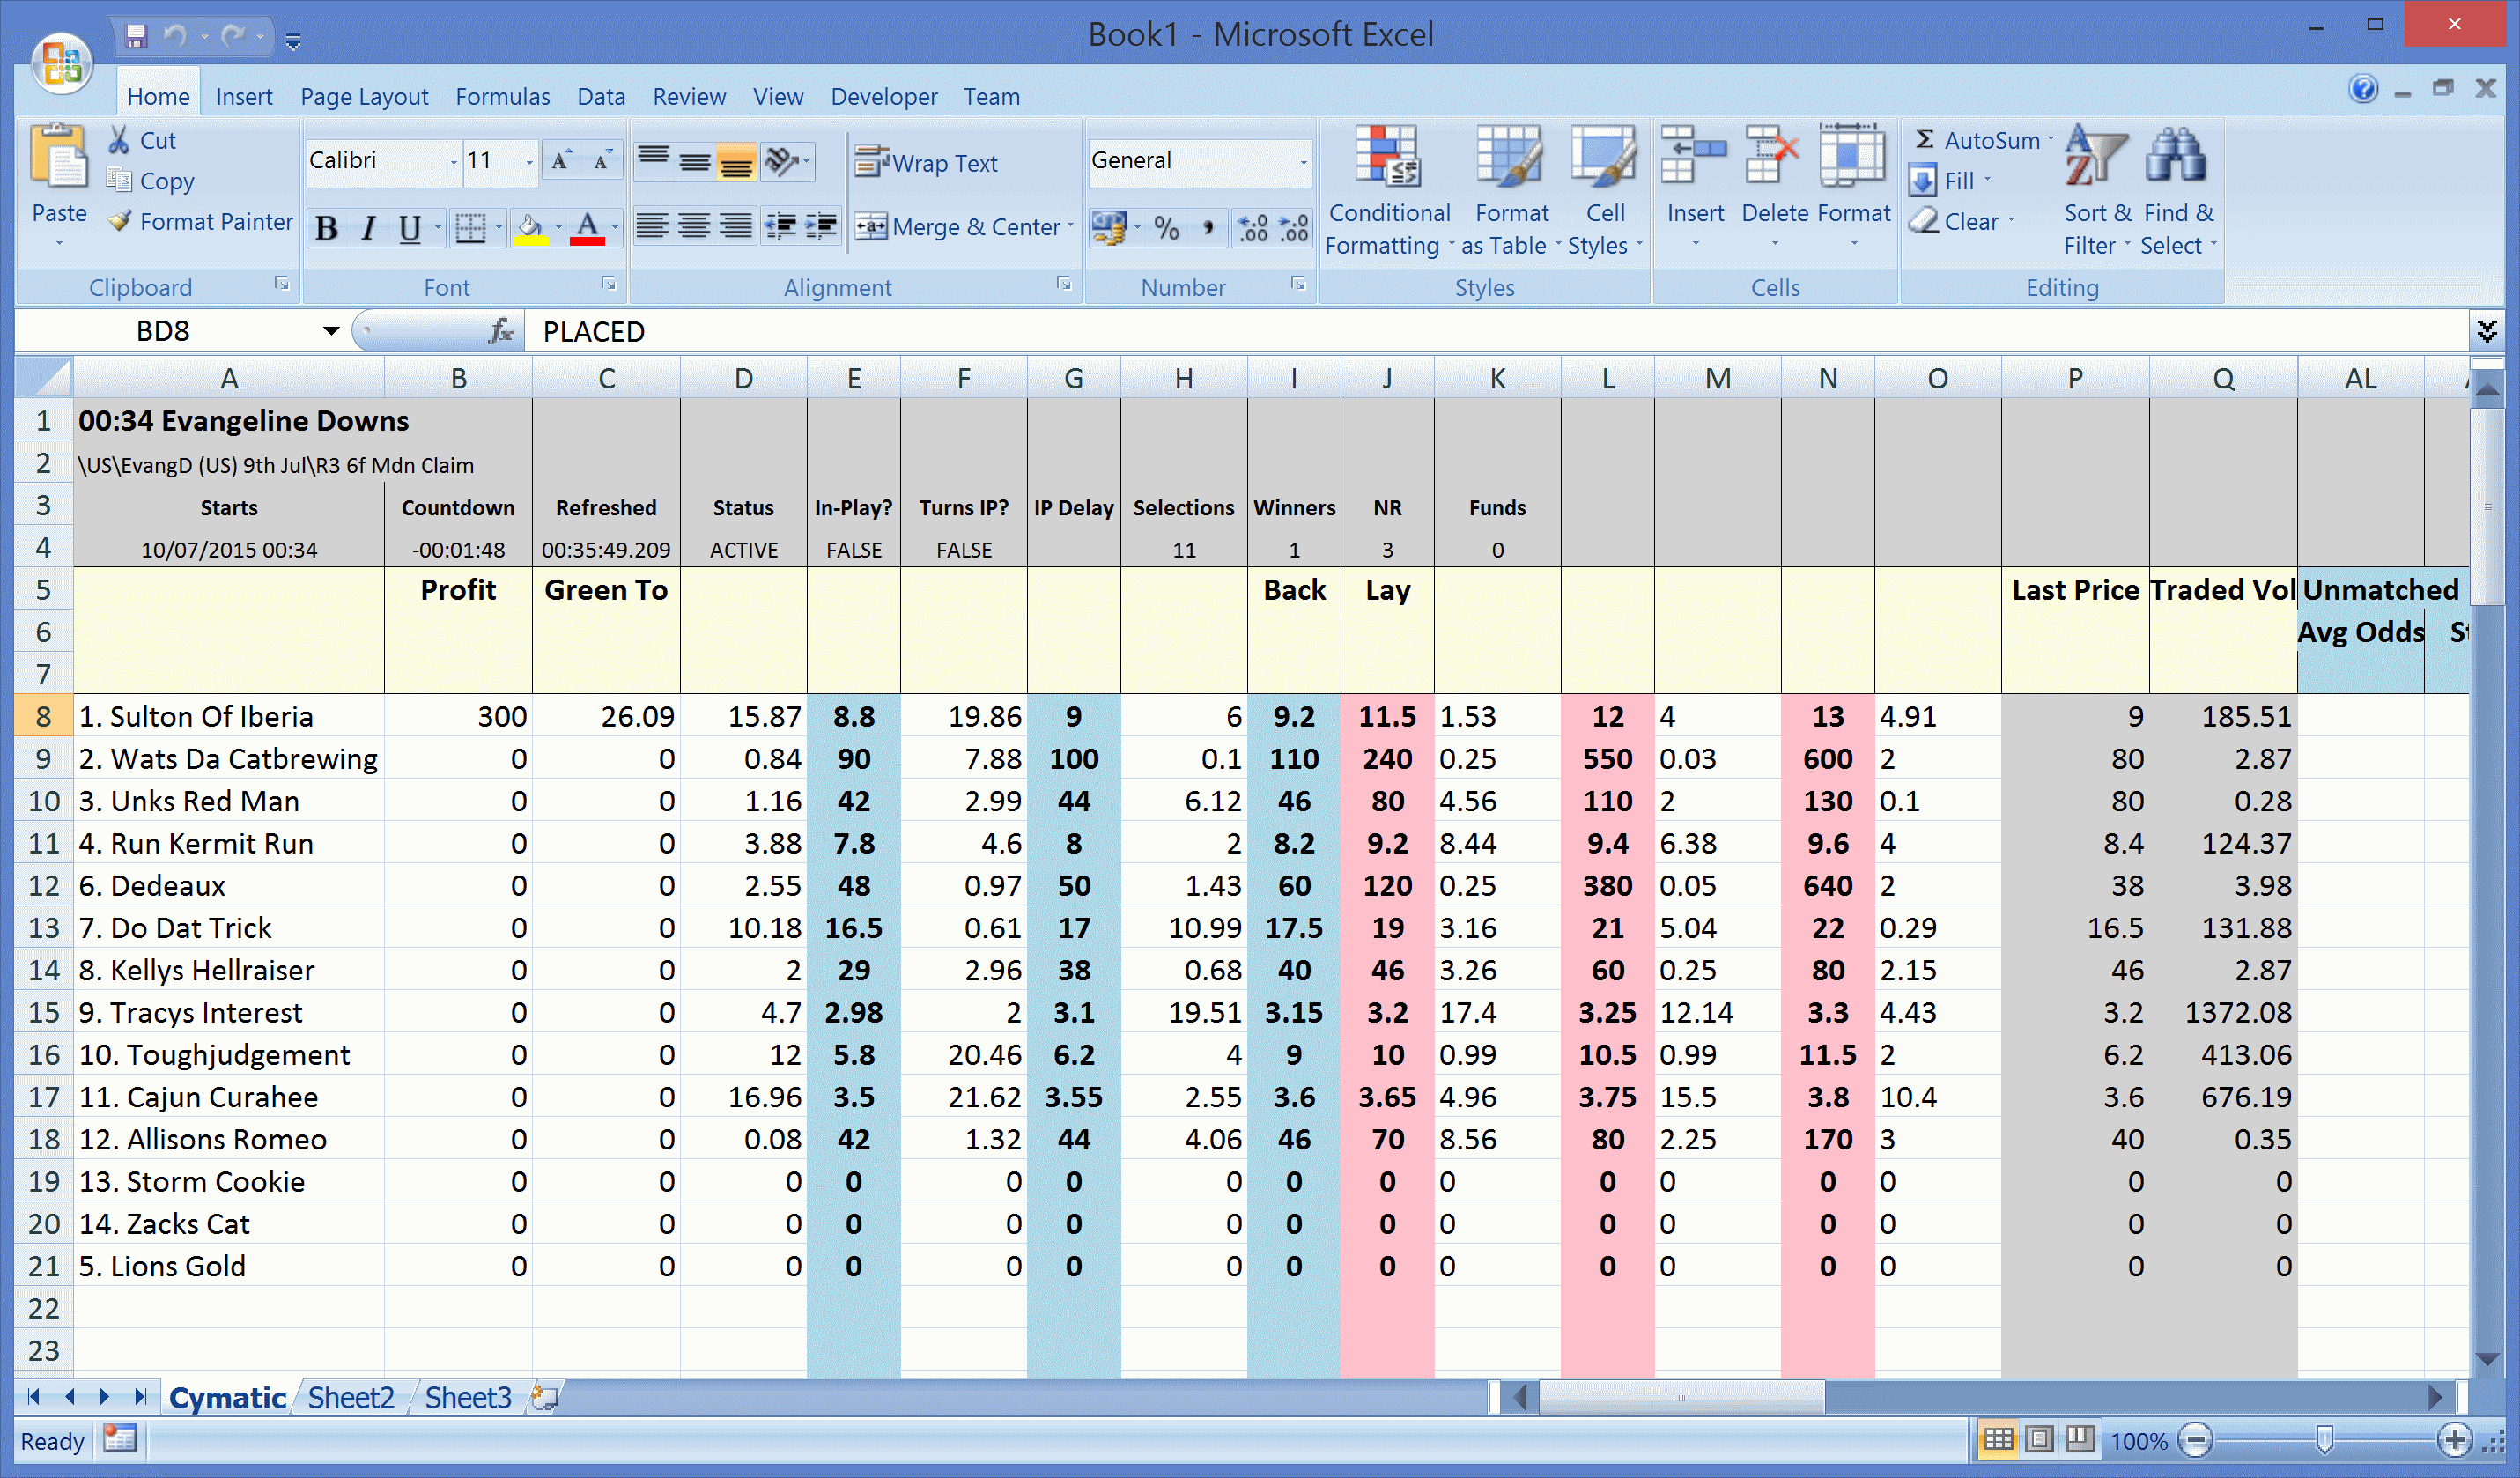 Betfair Spreadsheet Free With Excel Integration With Advanced Cymatic Trader For Betfair